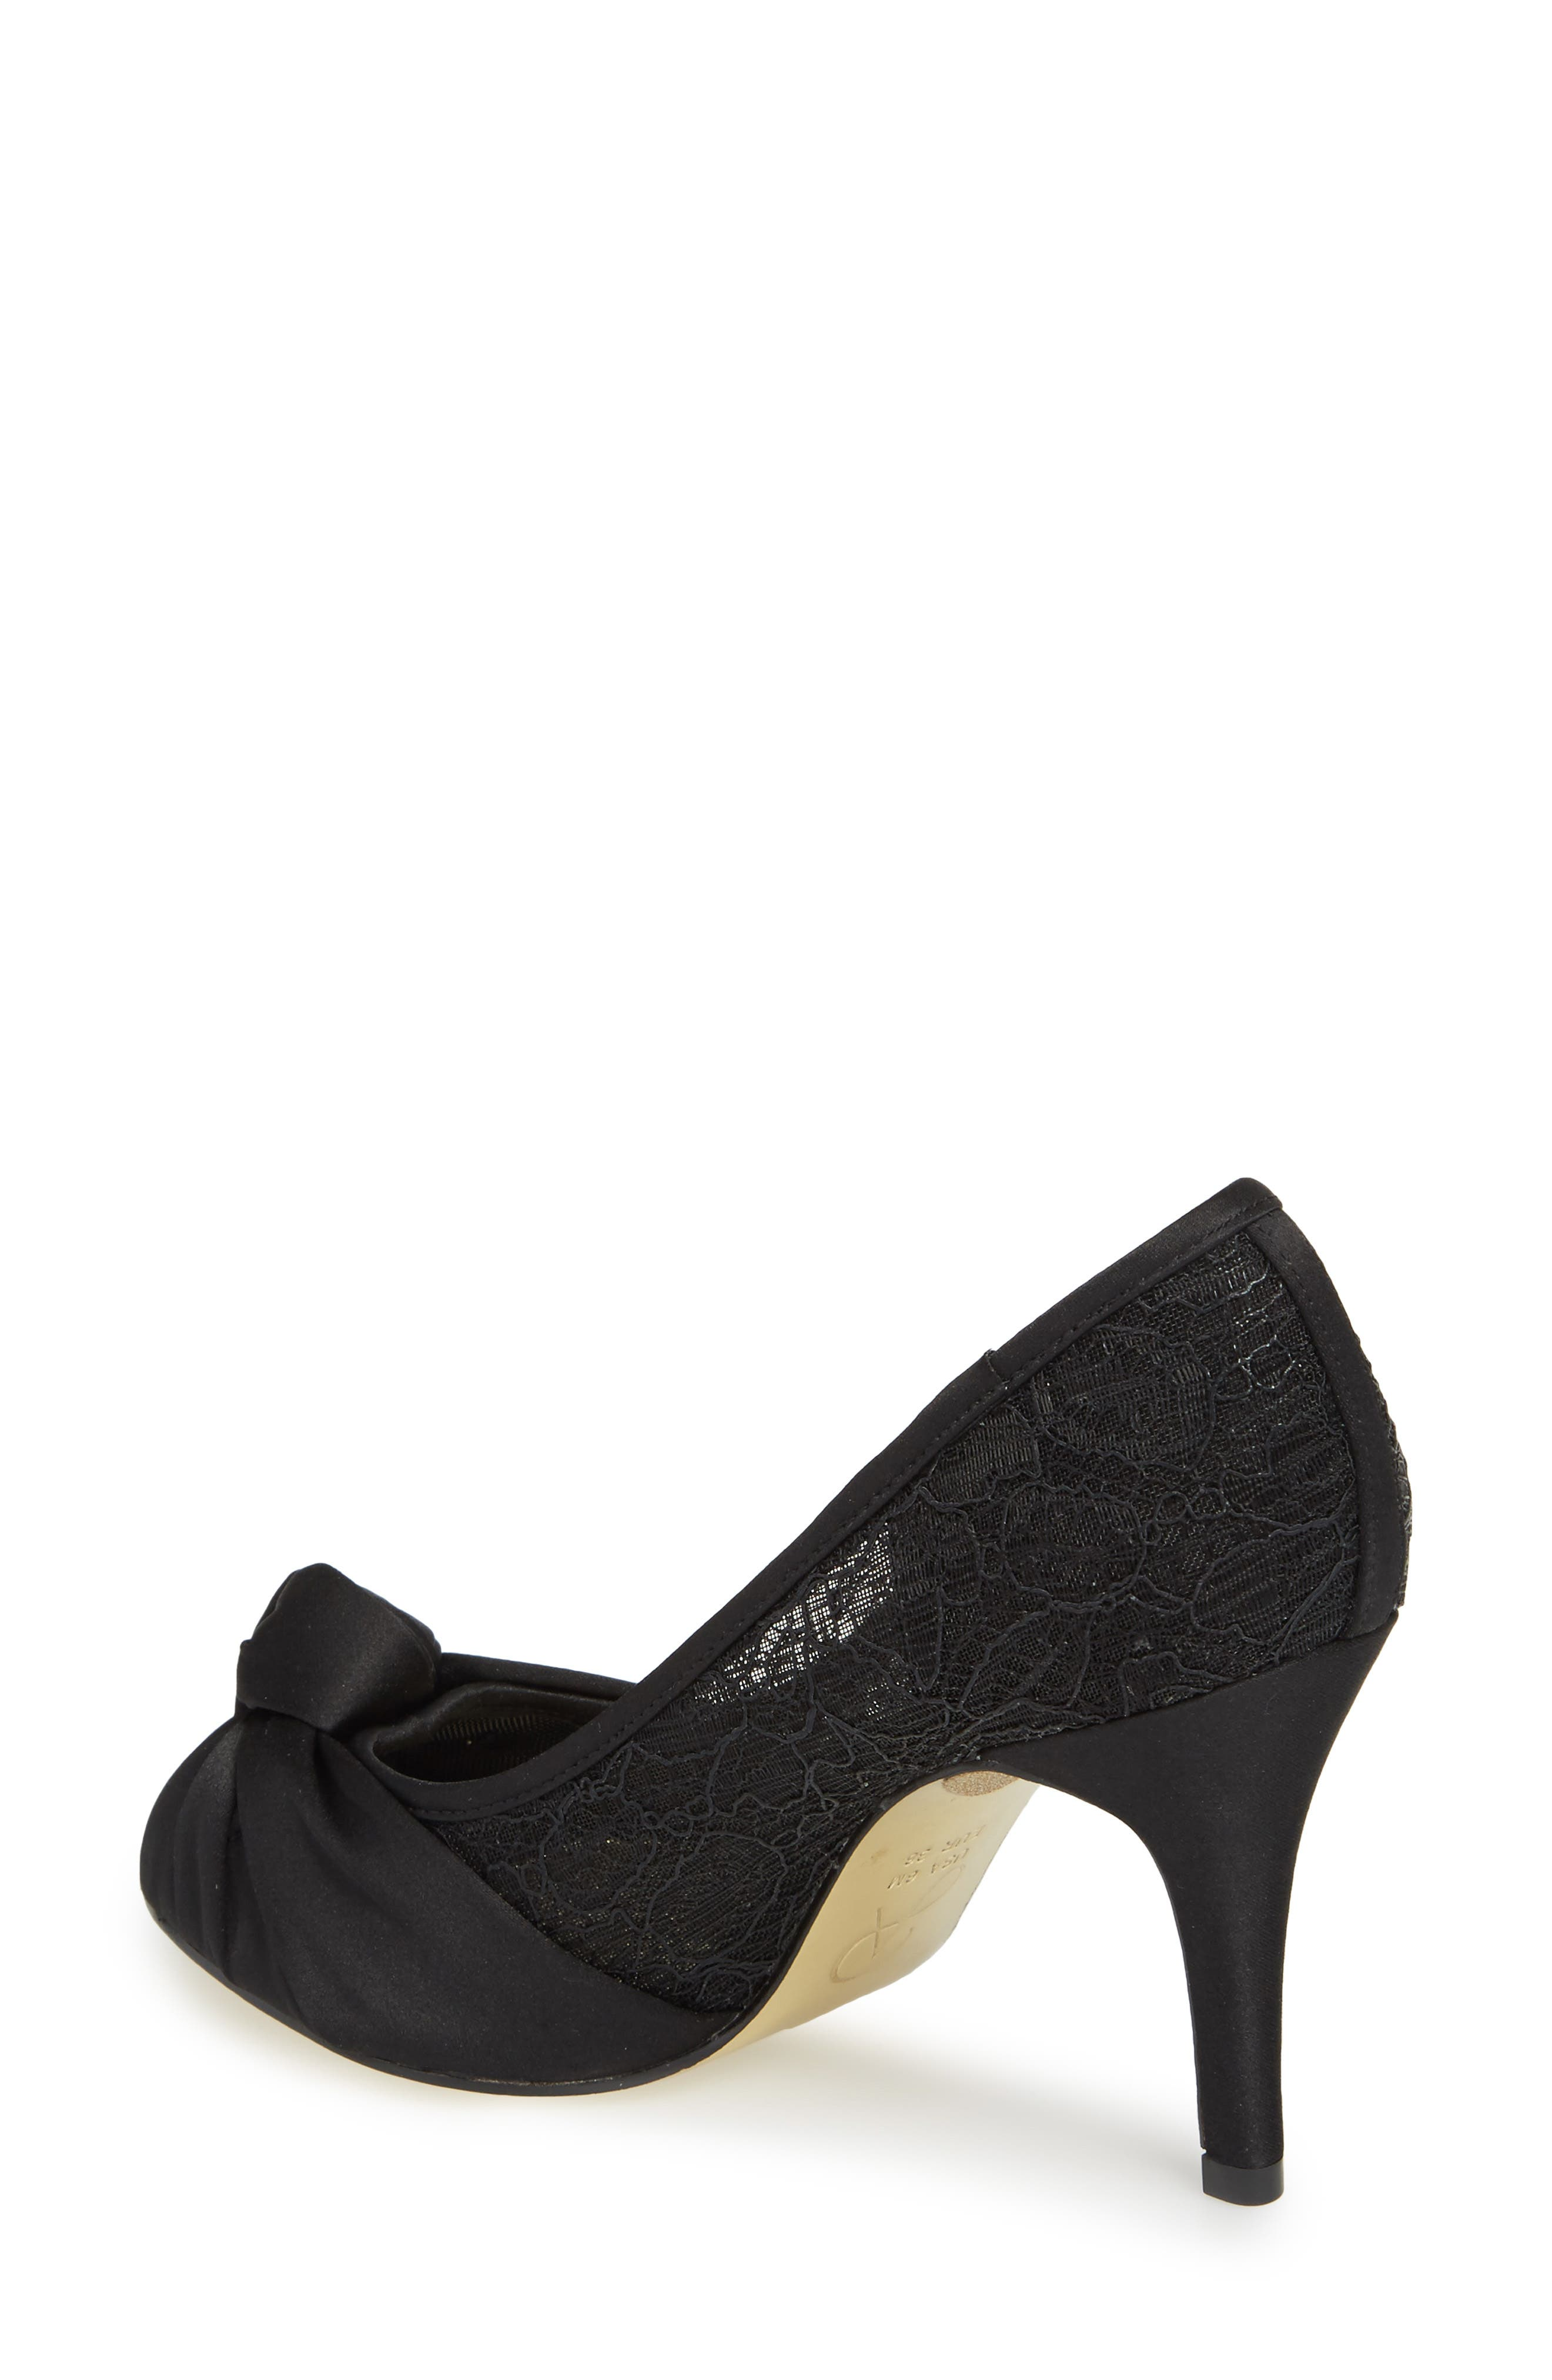 Francesca Knotted Peep Toe Pump,                             Alternate thumbnail 2, color,                             001